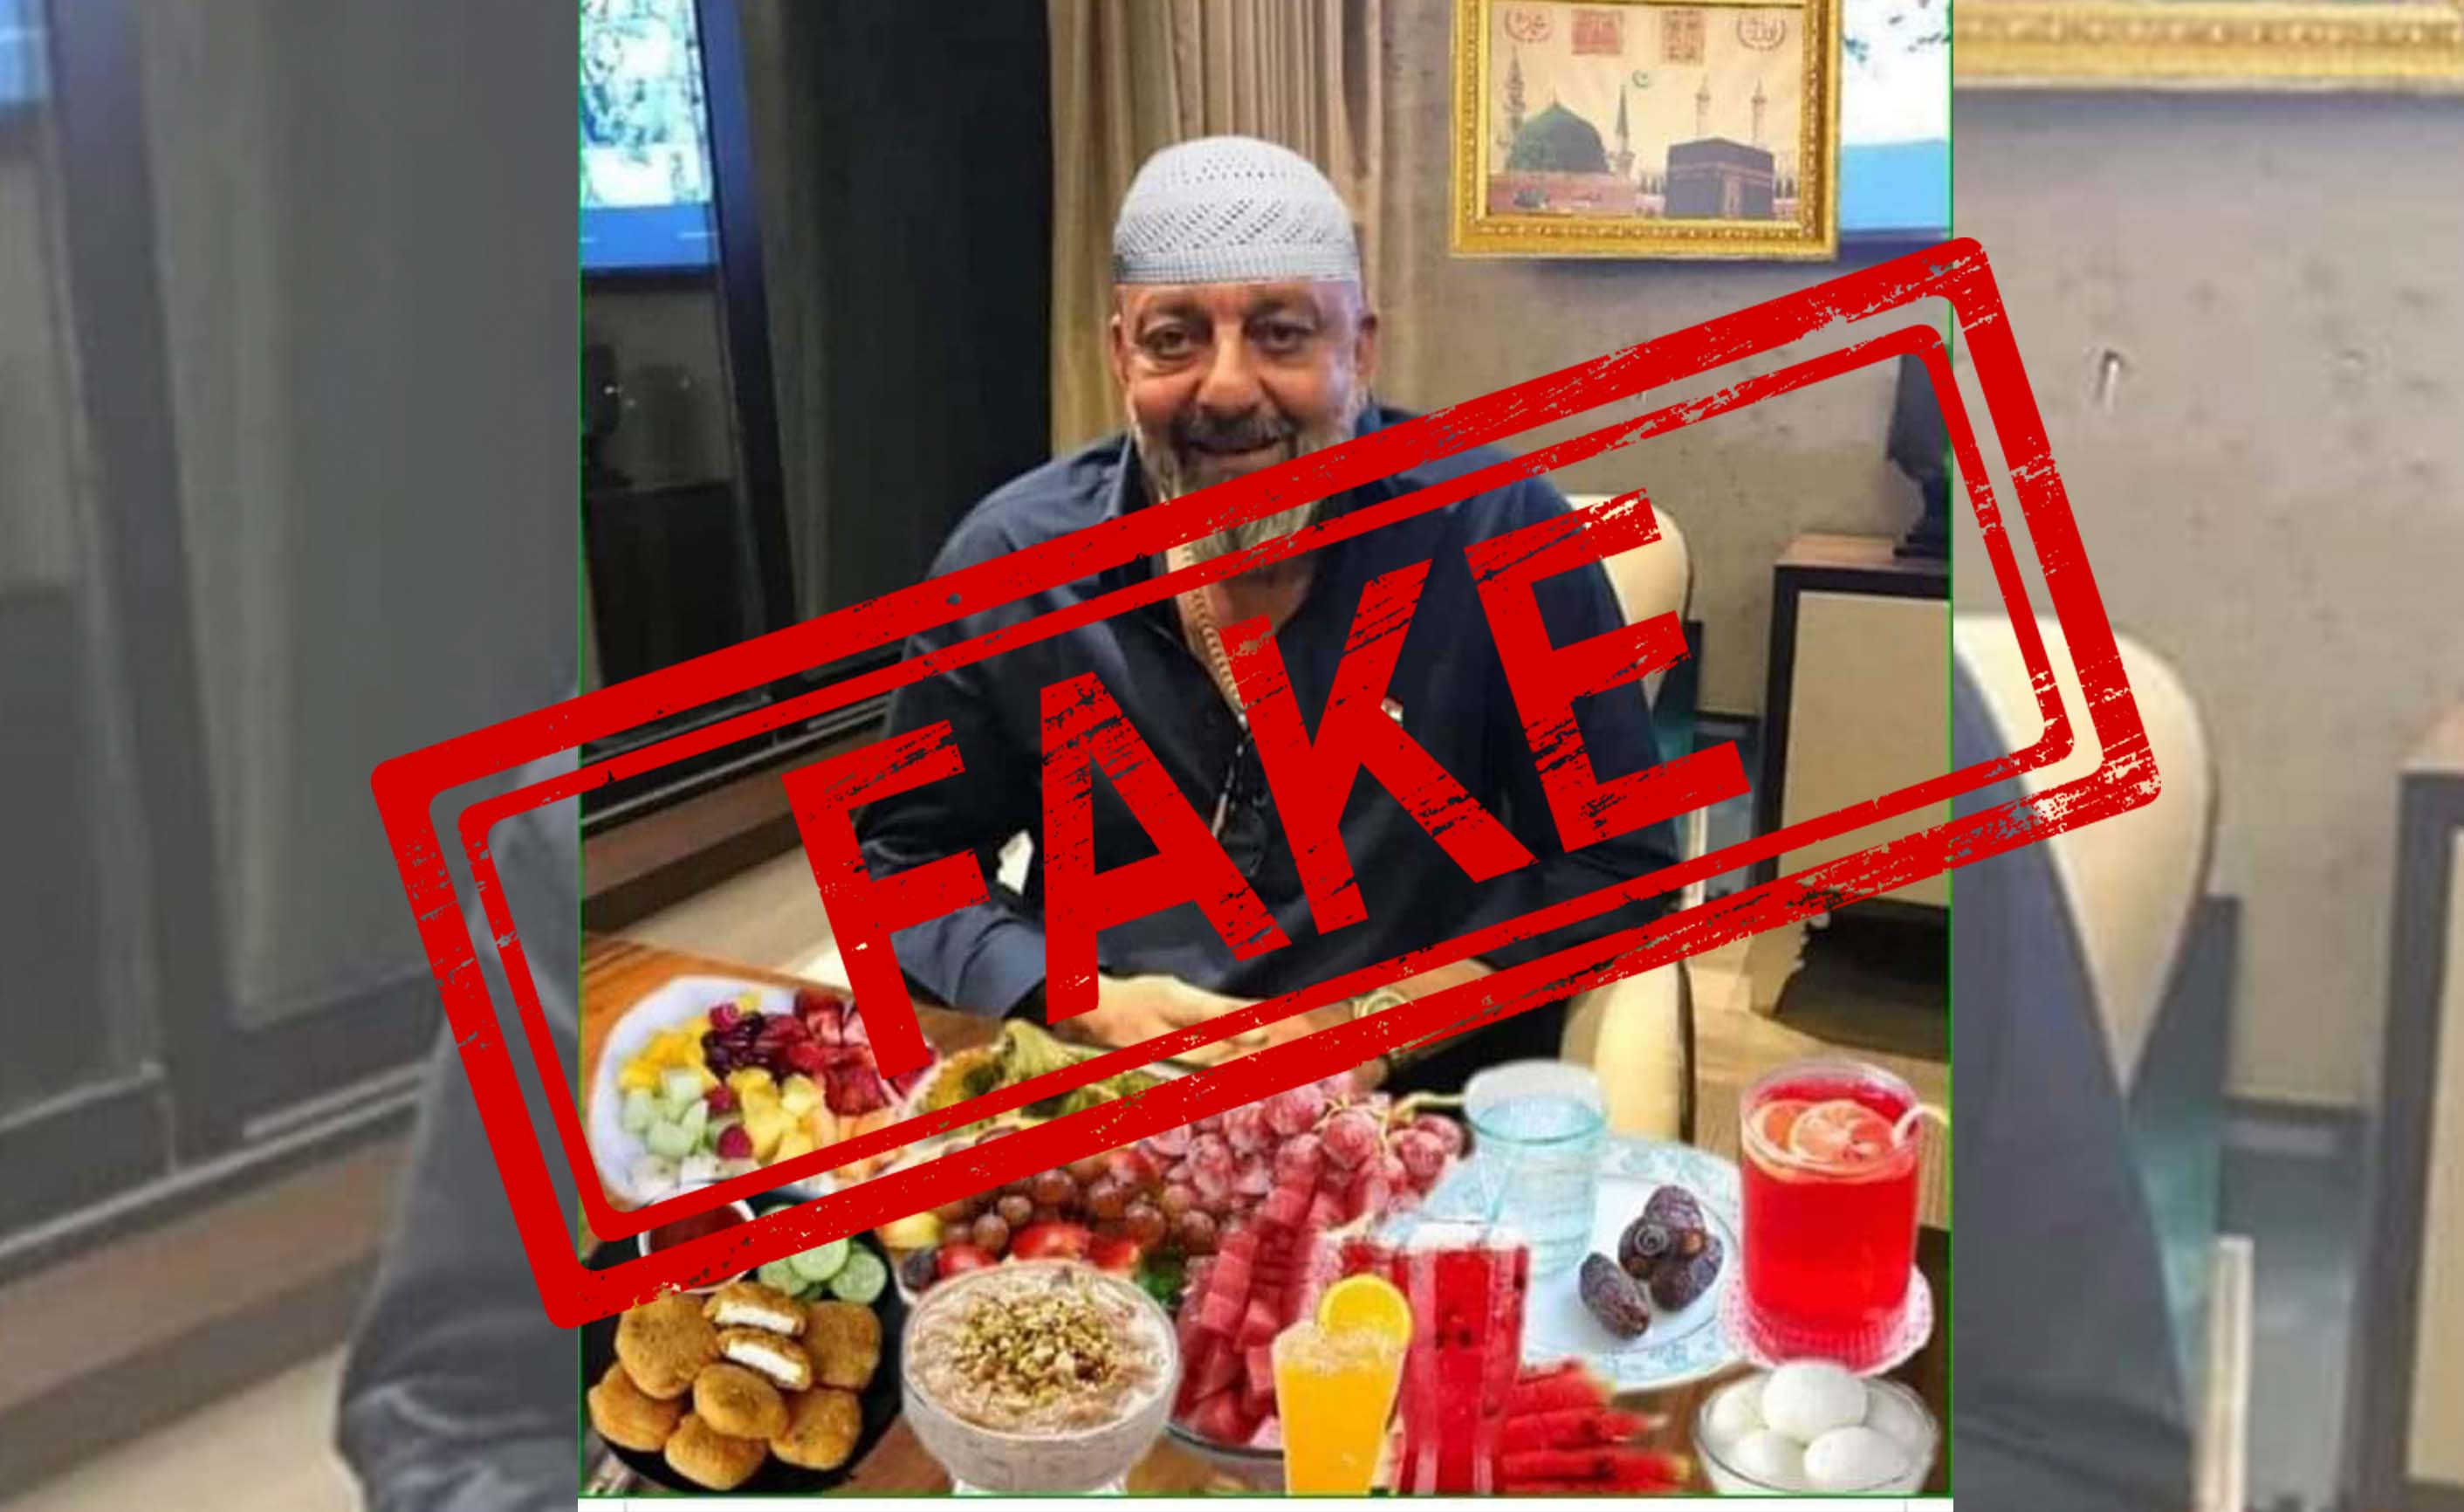 Sanjay Dutt, Iftar, Roza, Ramzan, NewsMobile, Mobile, News, India, Mobile, News, India, Fact Check, Fact Checker, Fake, News